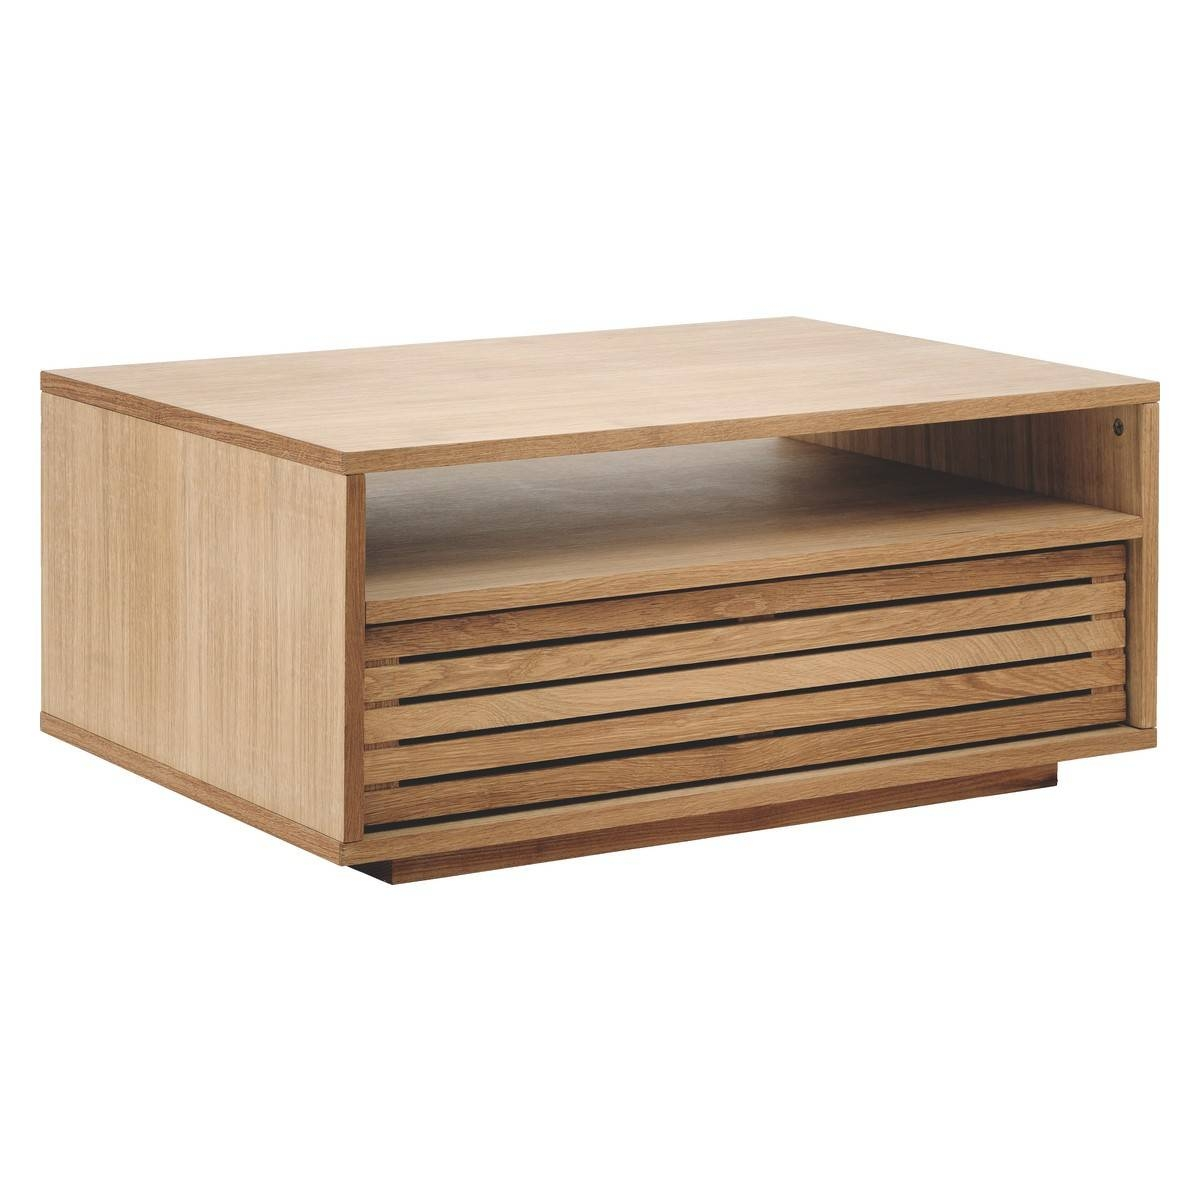 Max Oak Coffee Table With Storage | Buy Now At Habitat Uk With Regard To Oak Coffee Table With Storage (View 7 of 15)